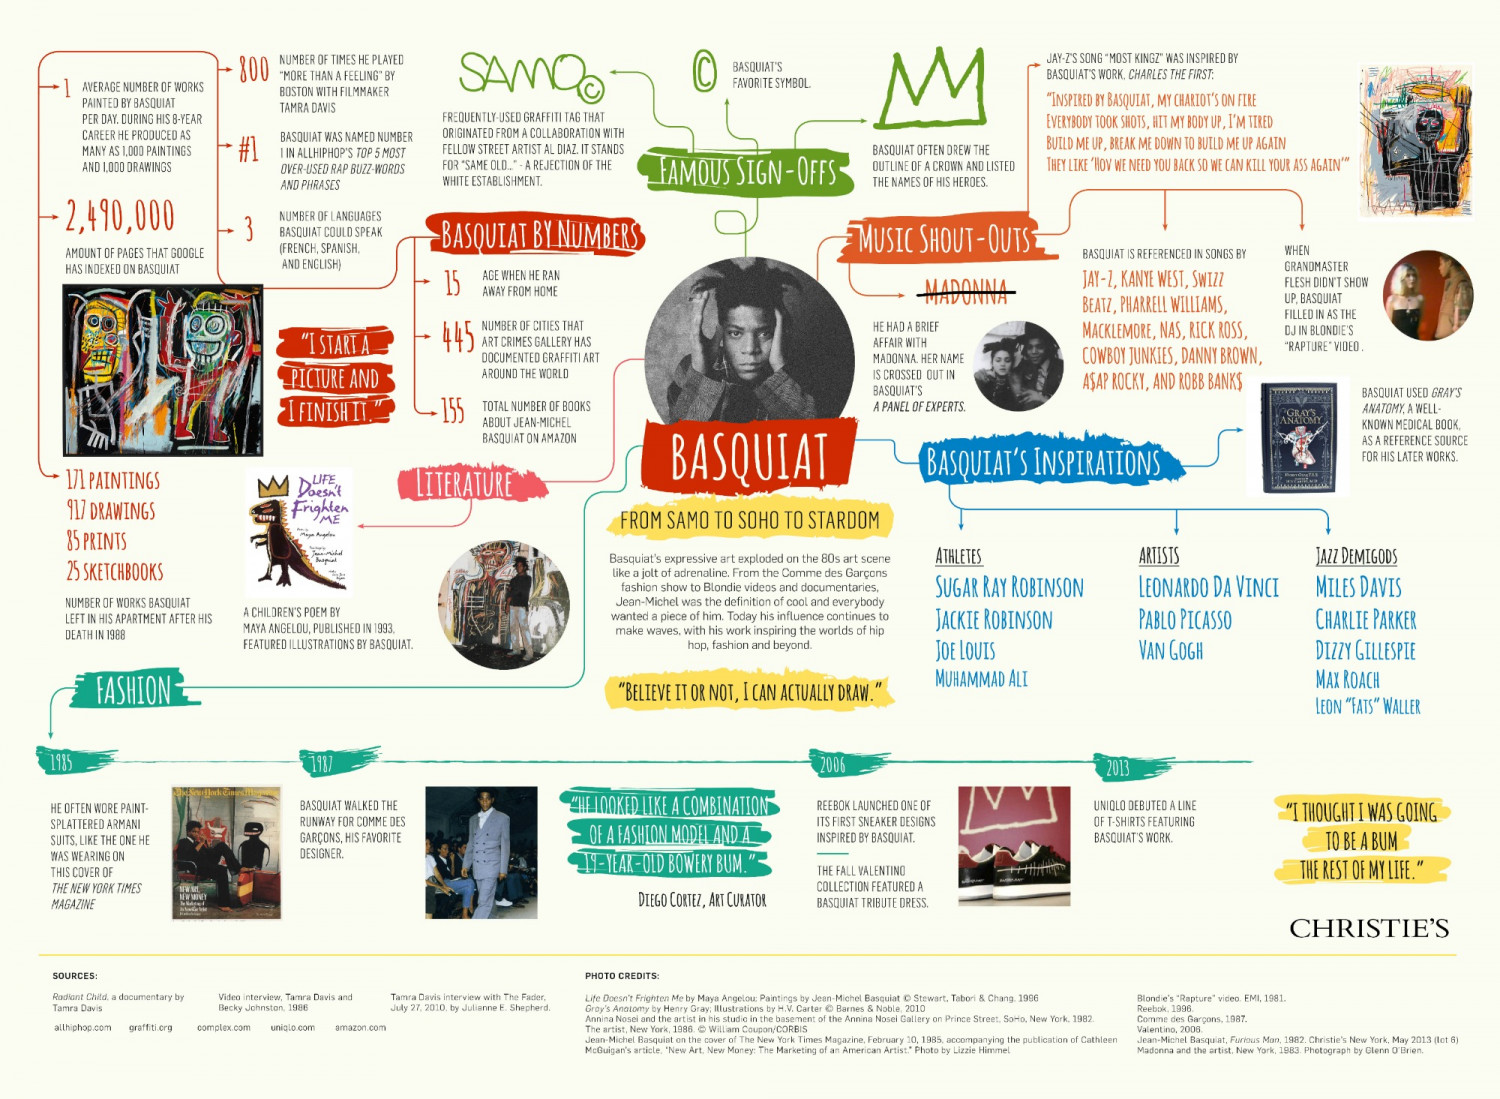 Basquiat: From Samo to Soho to Stardom Infographic